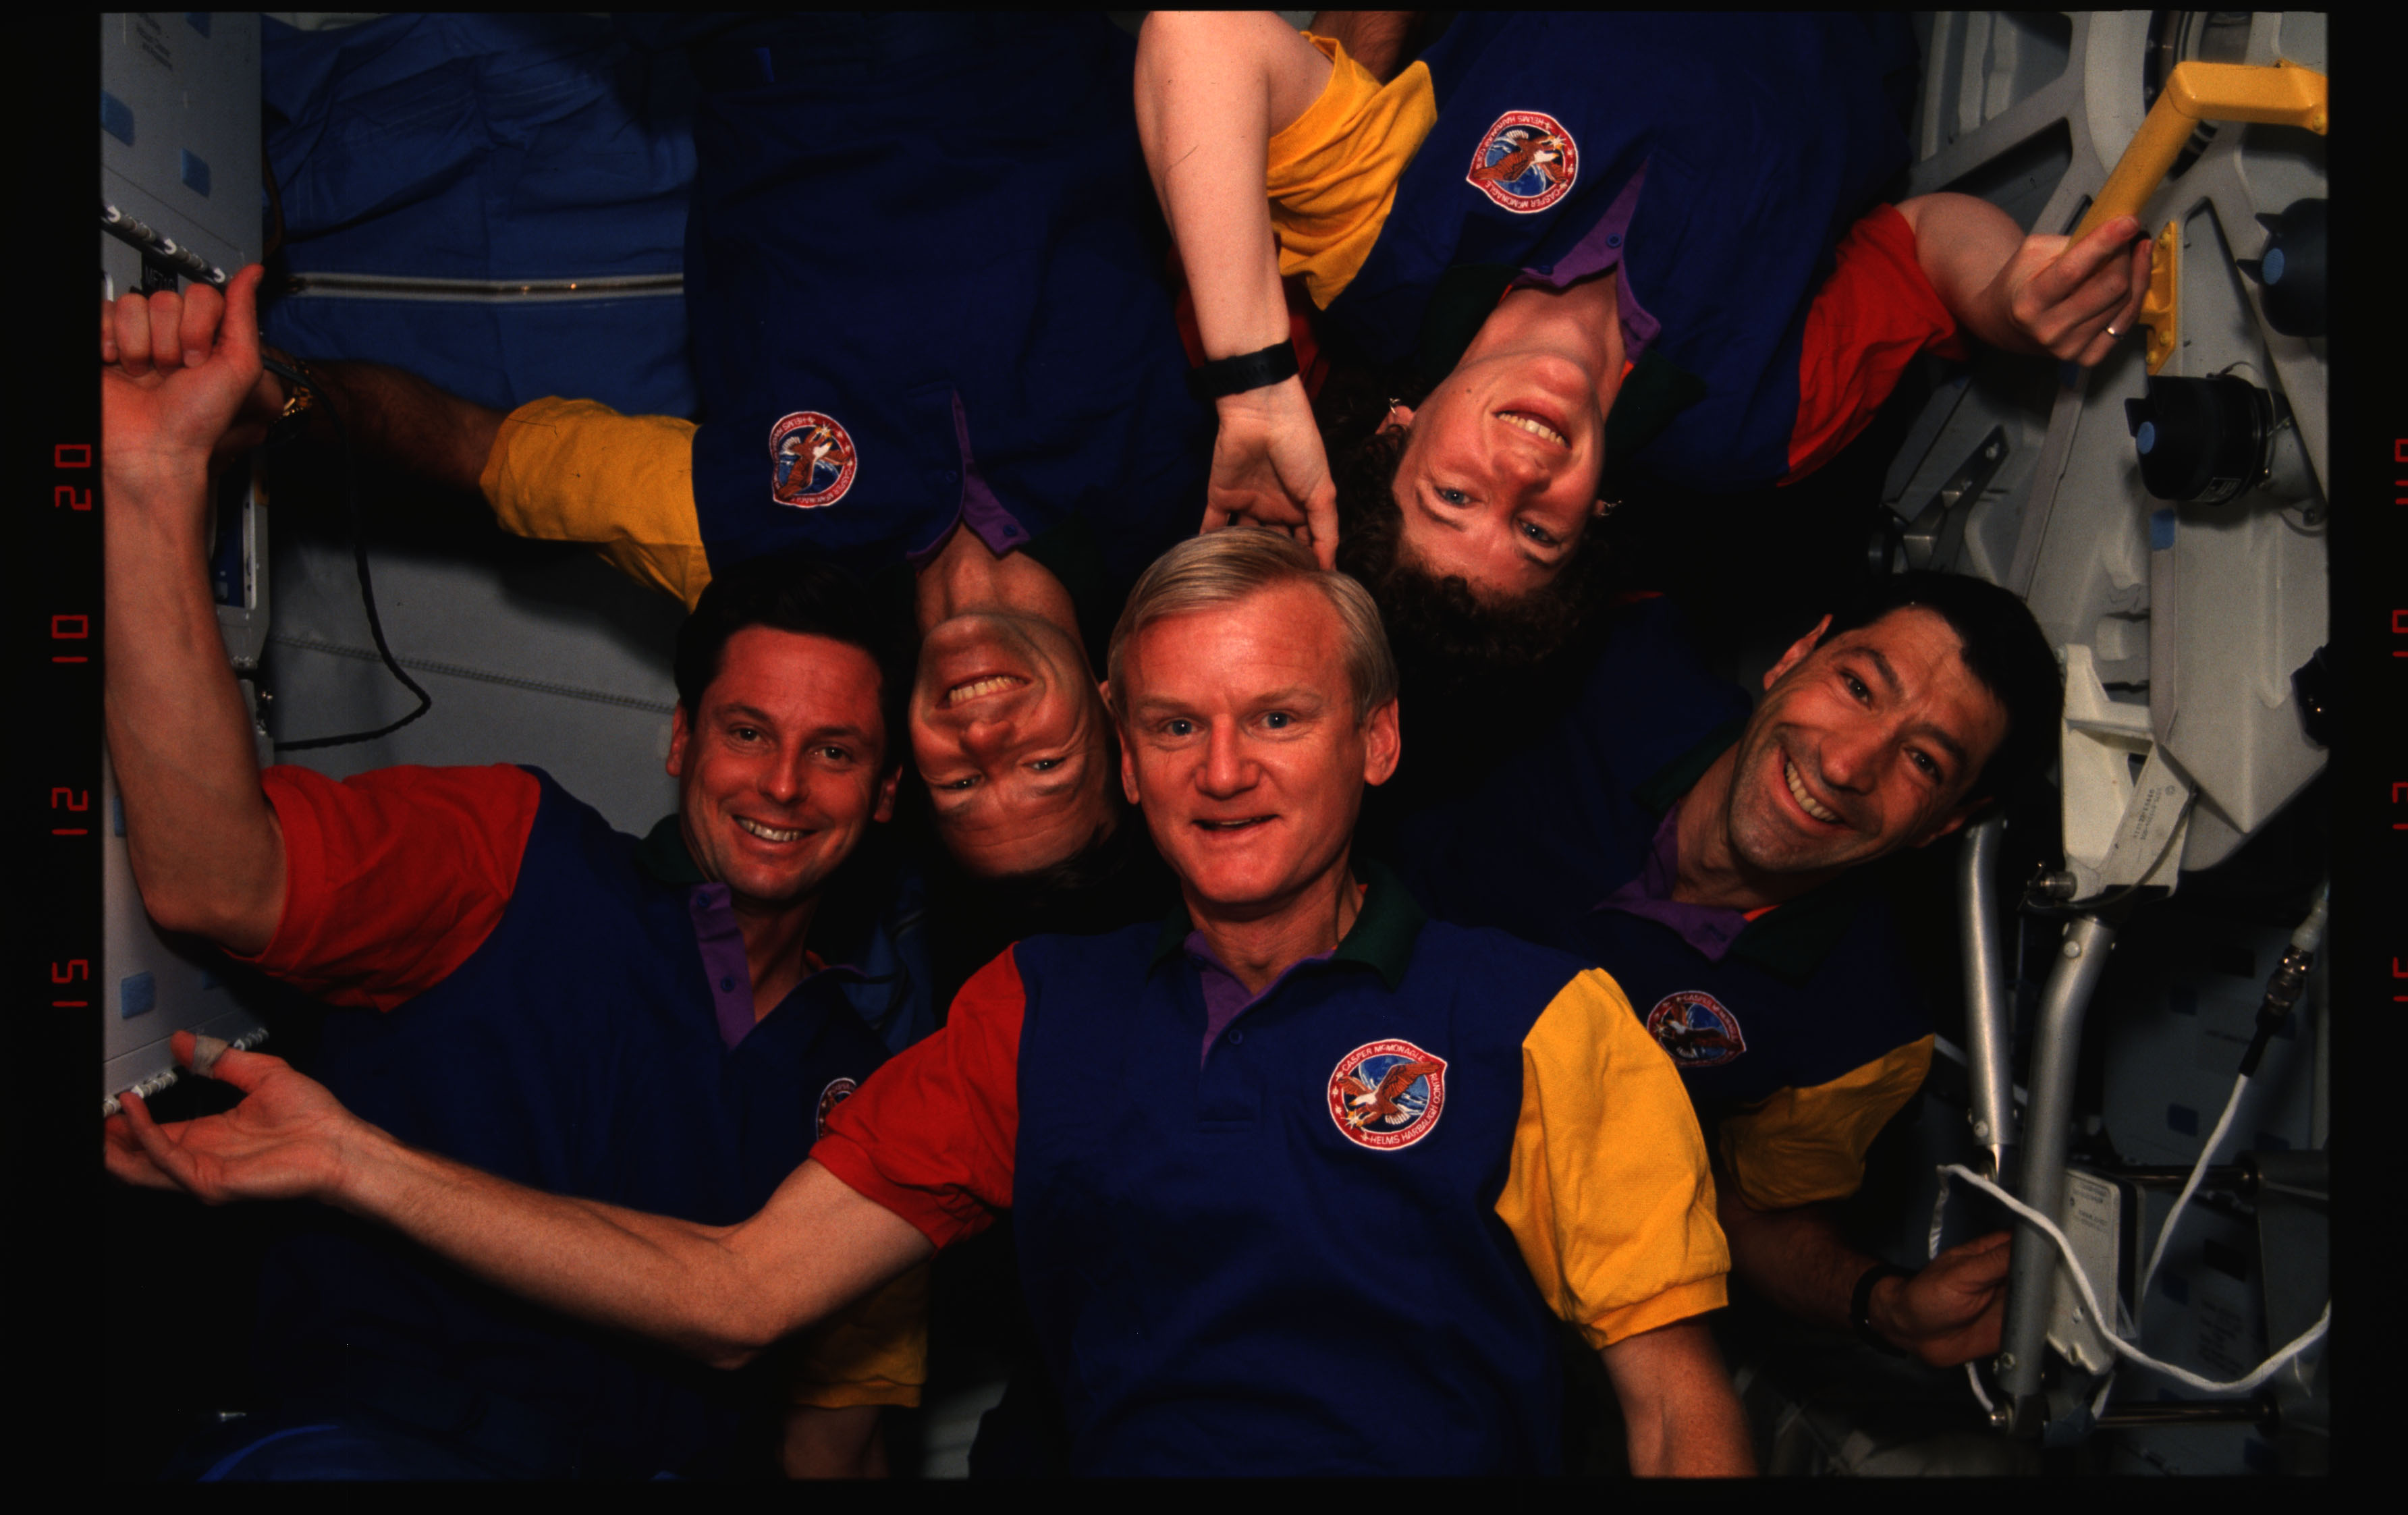 STS054-02-009 - STS-054 - In orbit crew group portraits.